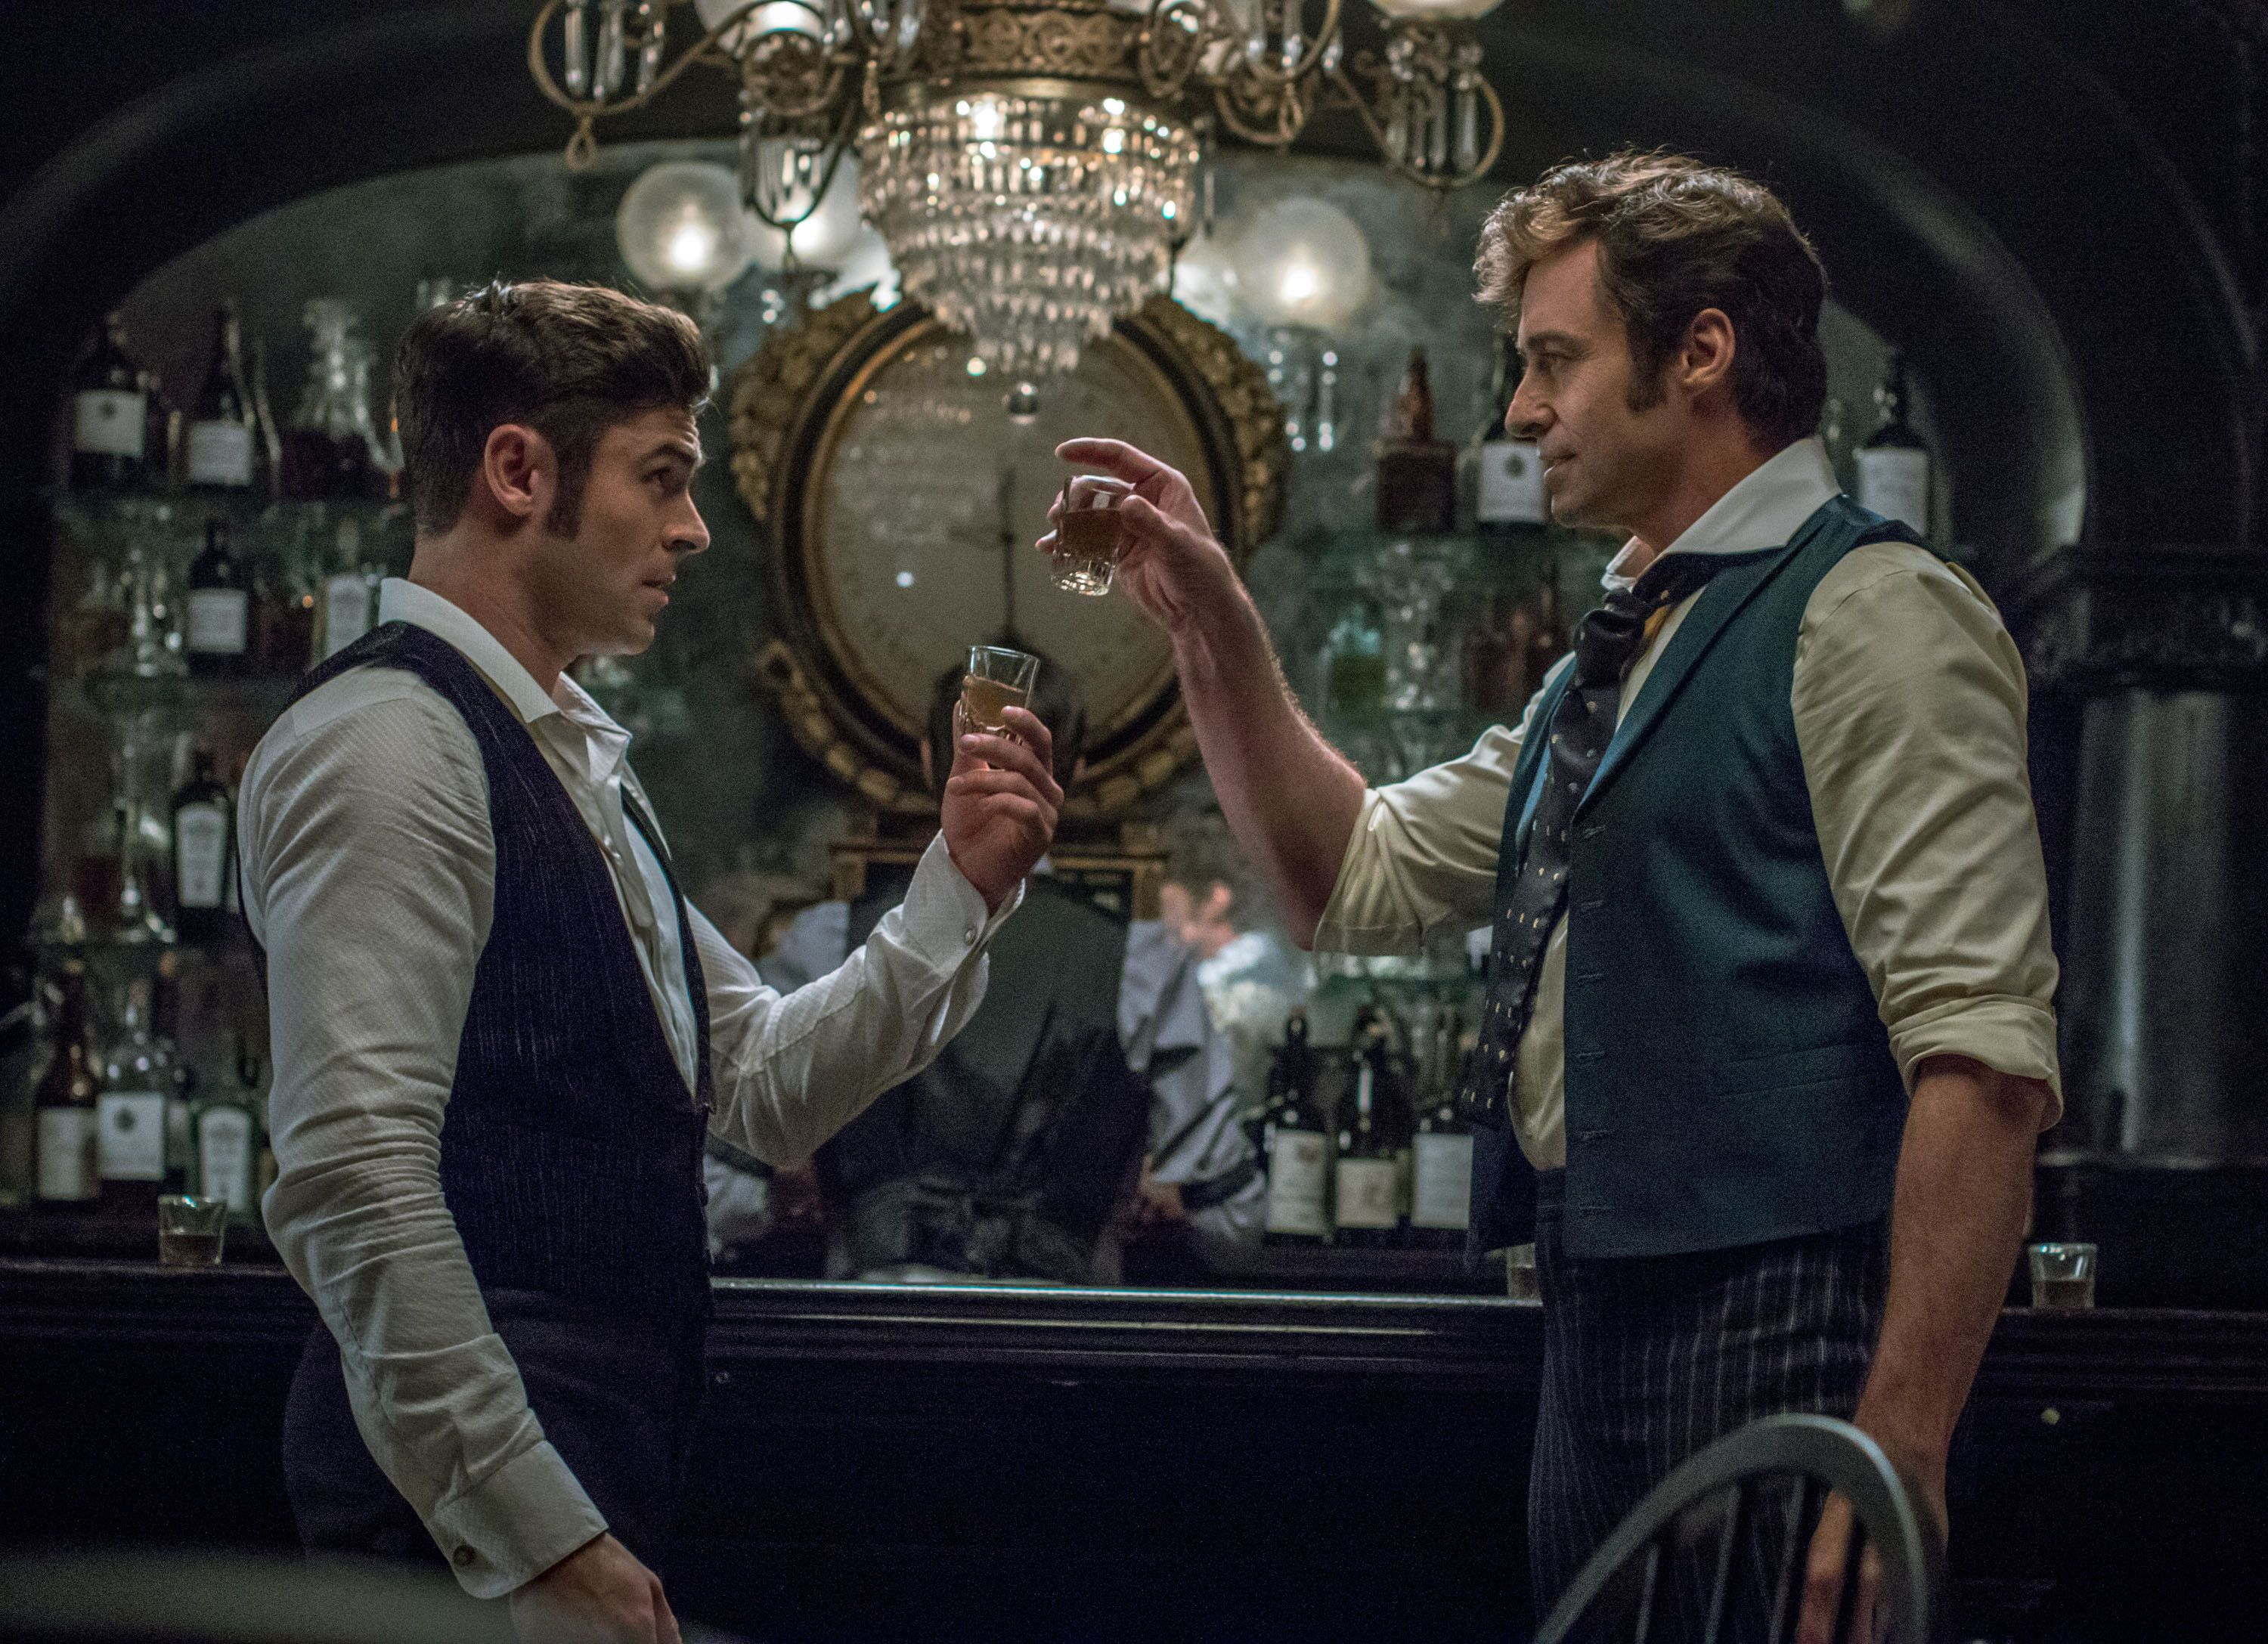 The 'Greatest Showman' Trailer Is Heavy On Spectacle, Light On Hugh Jackman